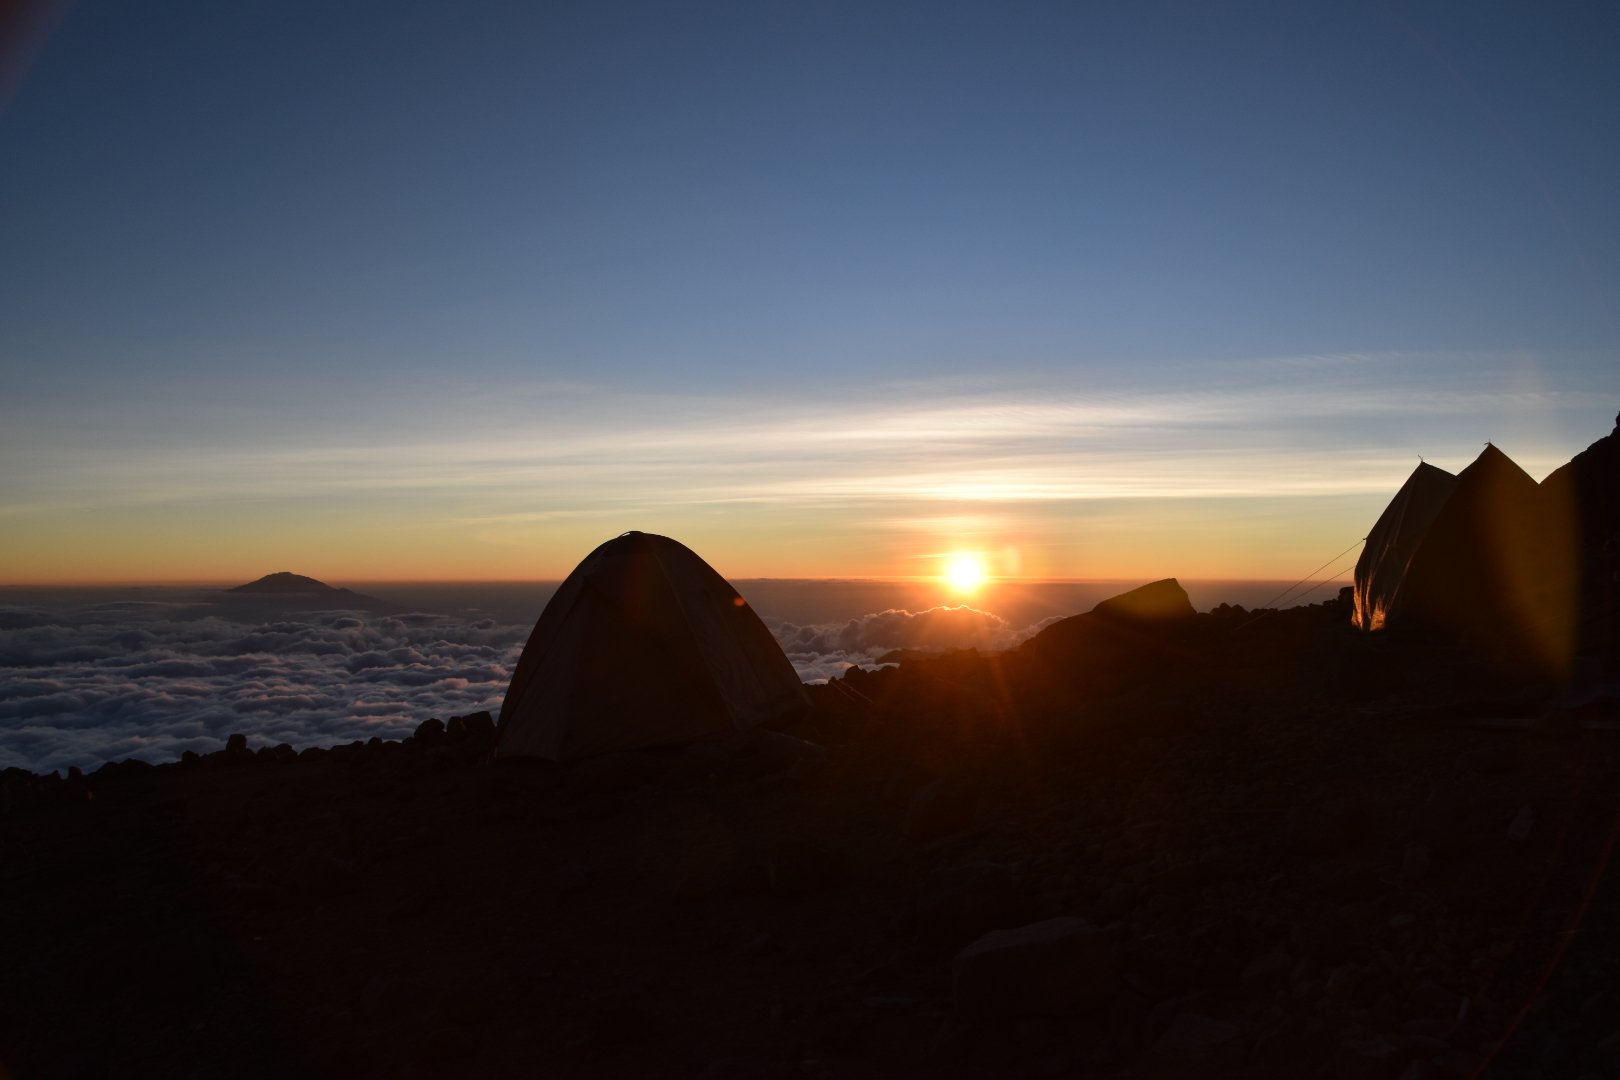 Sunset at Arrow Glacier camp - base camp for the ascent of the Western Breach climb on Kilimanjaro